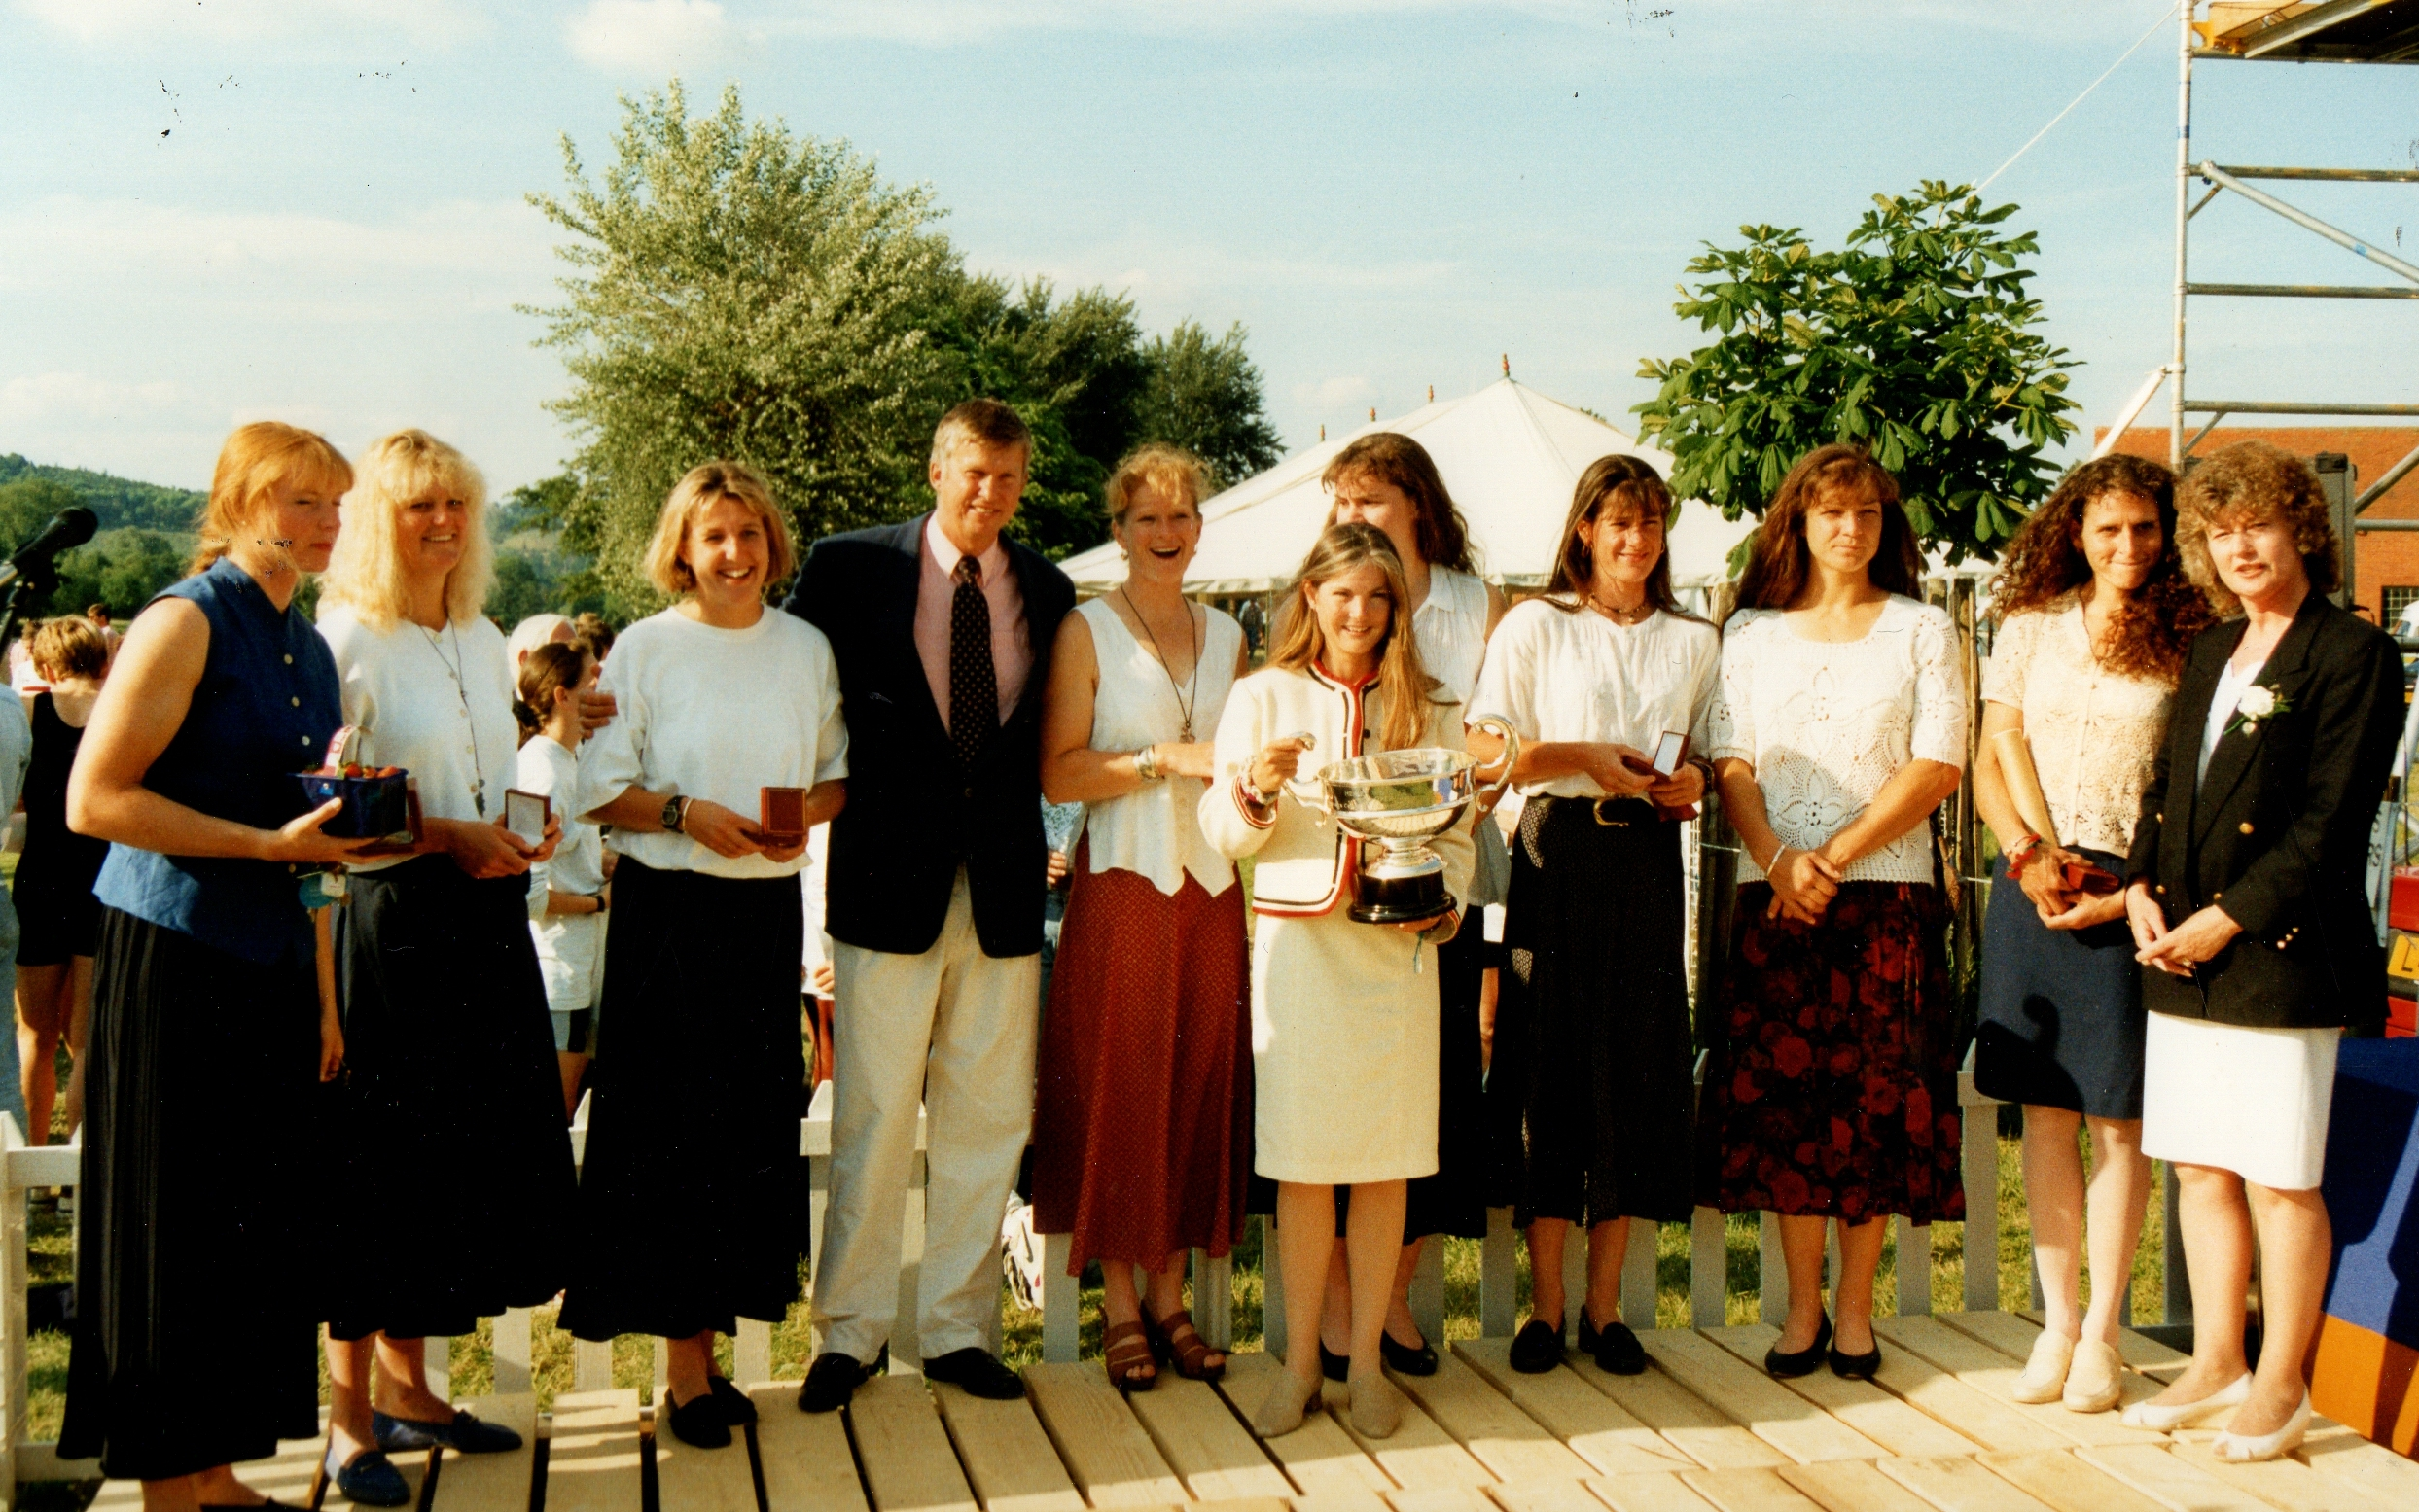 Women in skirts at presentation